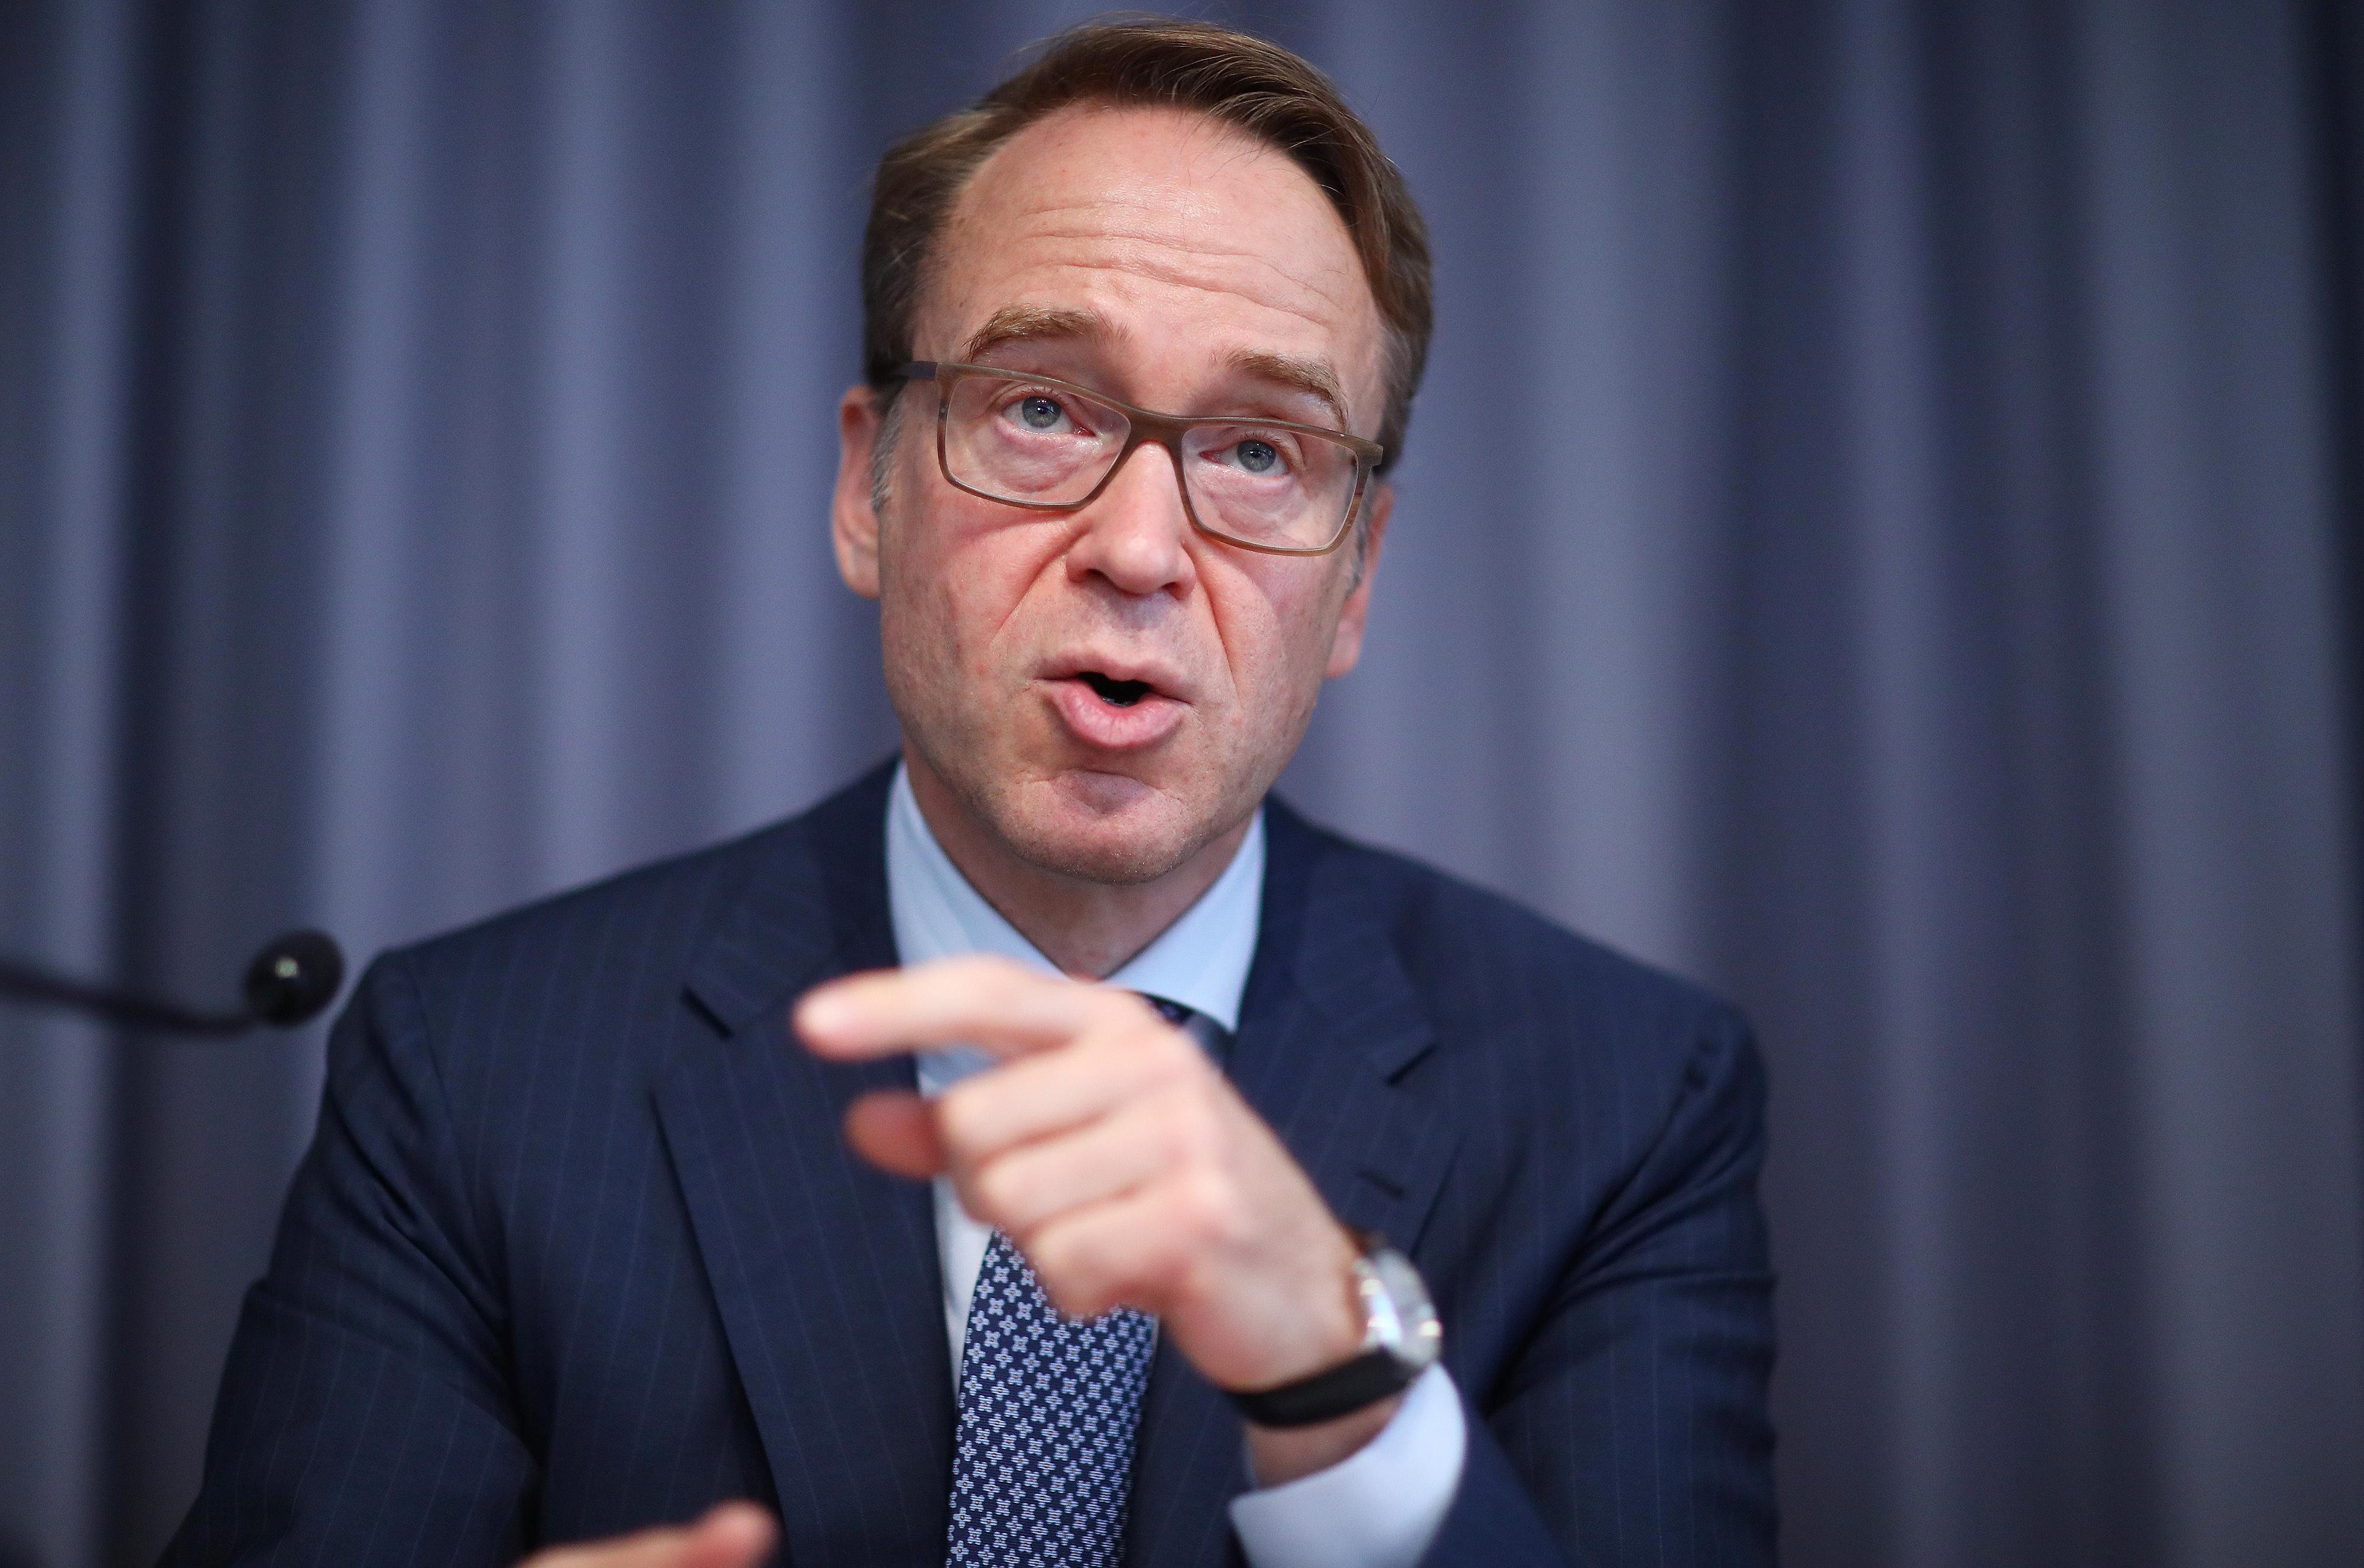 ECB's Weidmann sees no need for economic stimulus: newspaper